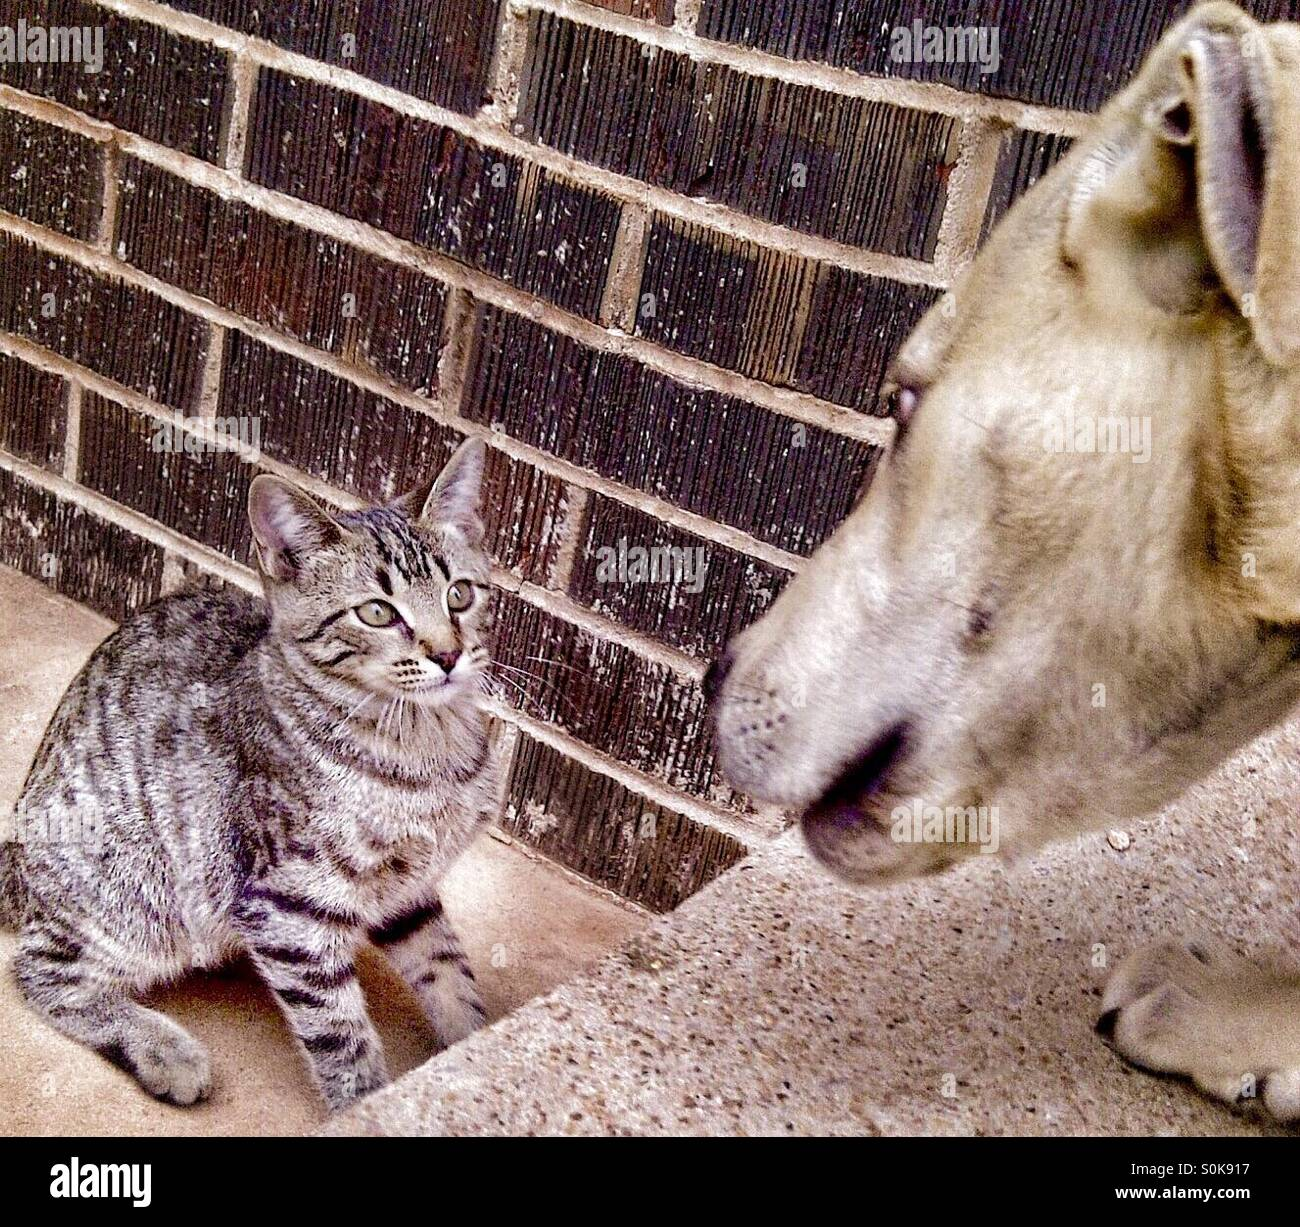 Stare down between cat and dog - Stock Image